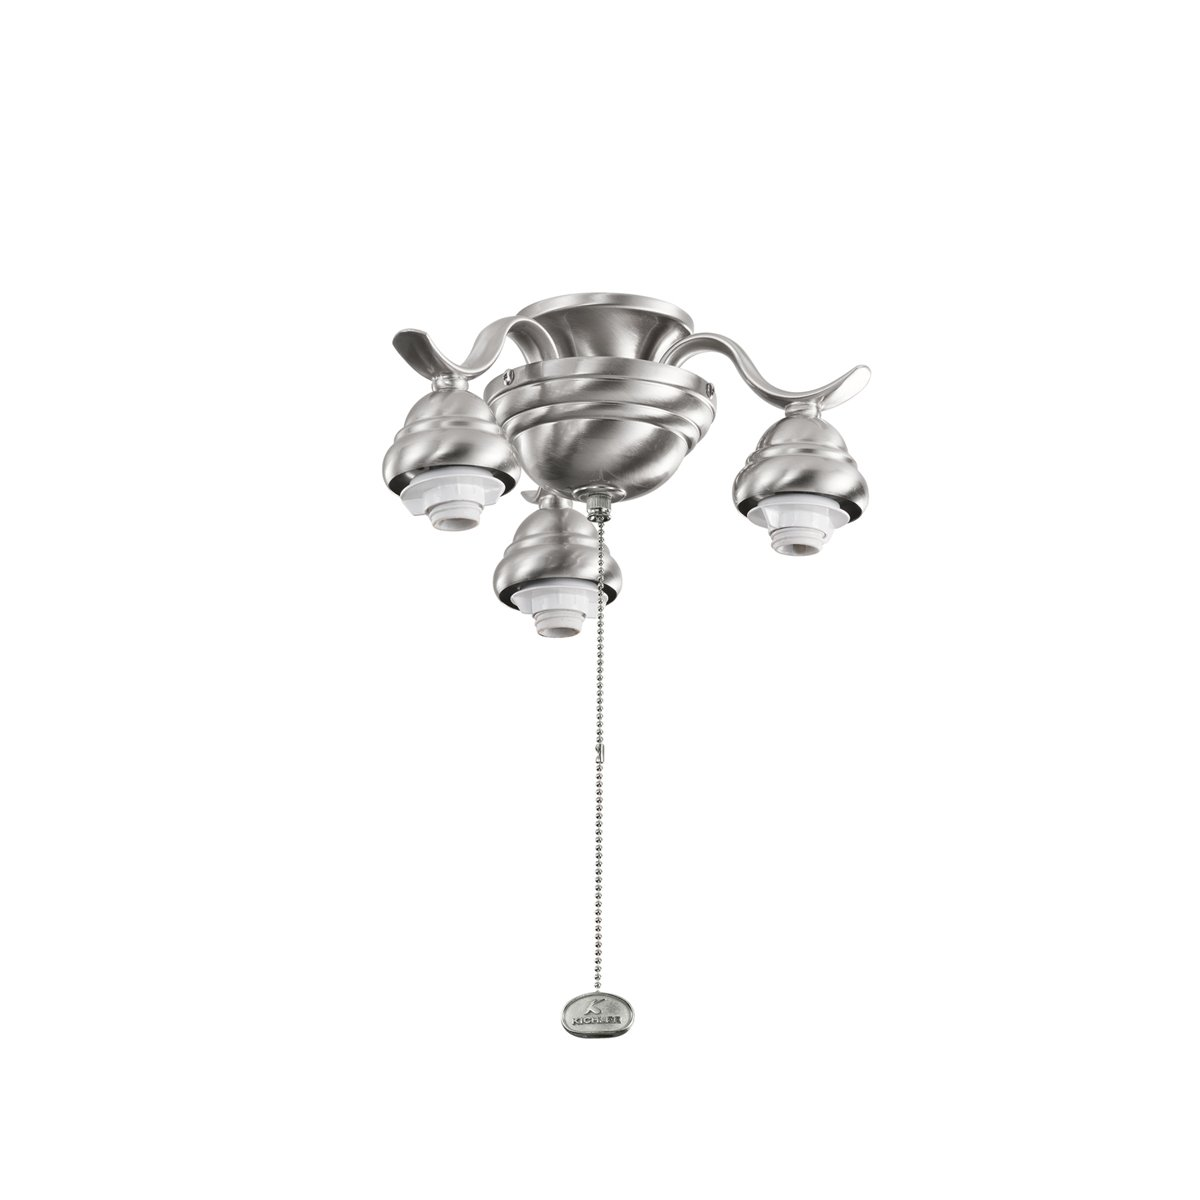 Glass Sold Separately Kichler  350101BSS Decorative 3-Light Ceiling Fan Light Fitter Brushed Stainless Steel Finish